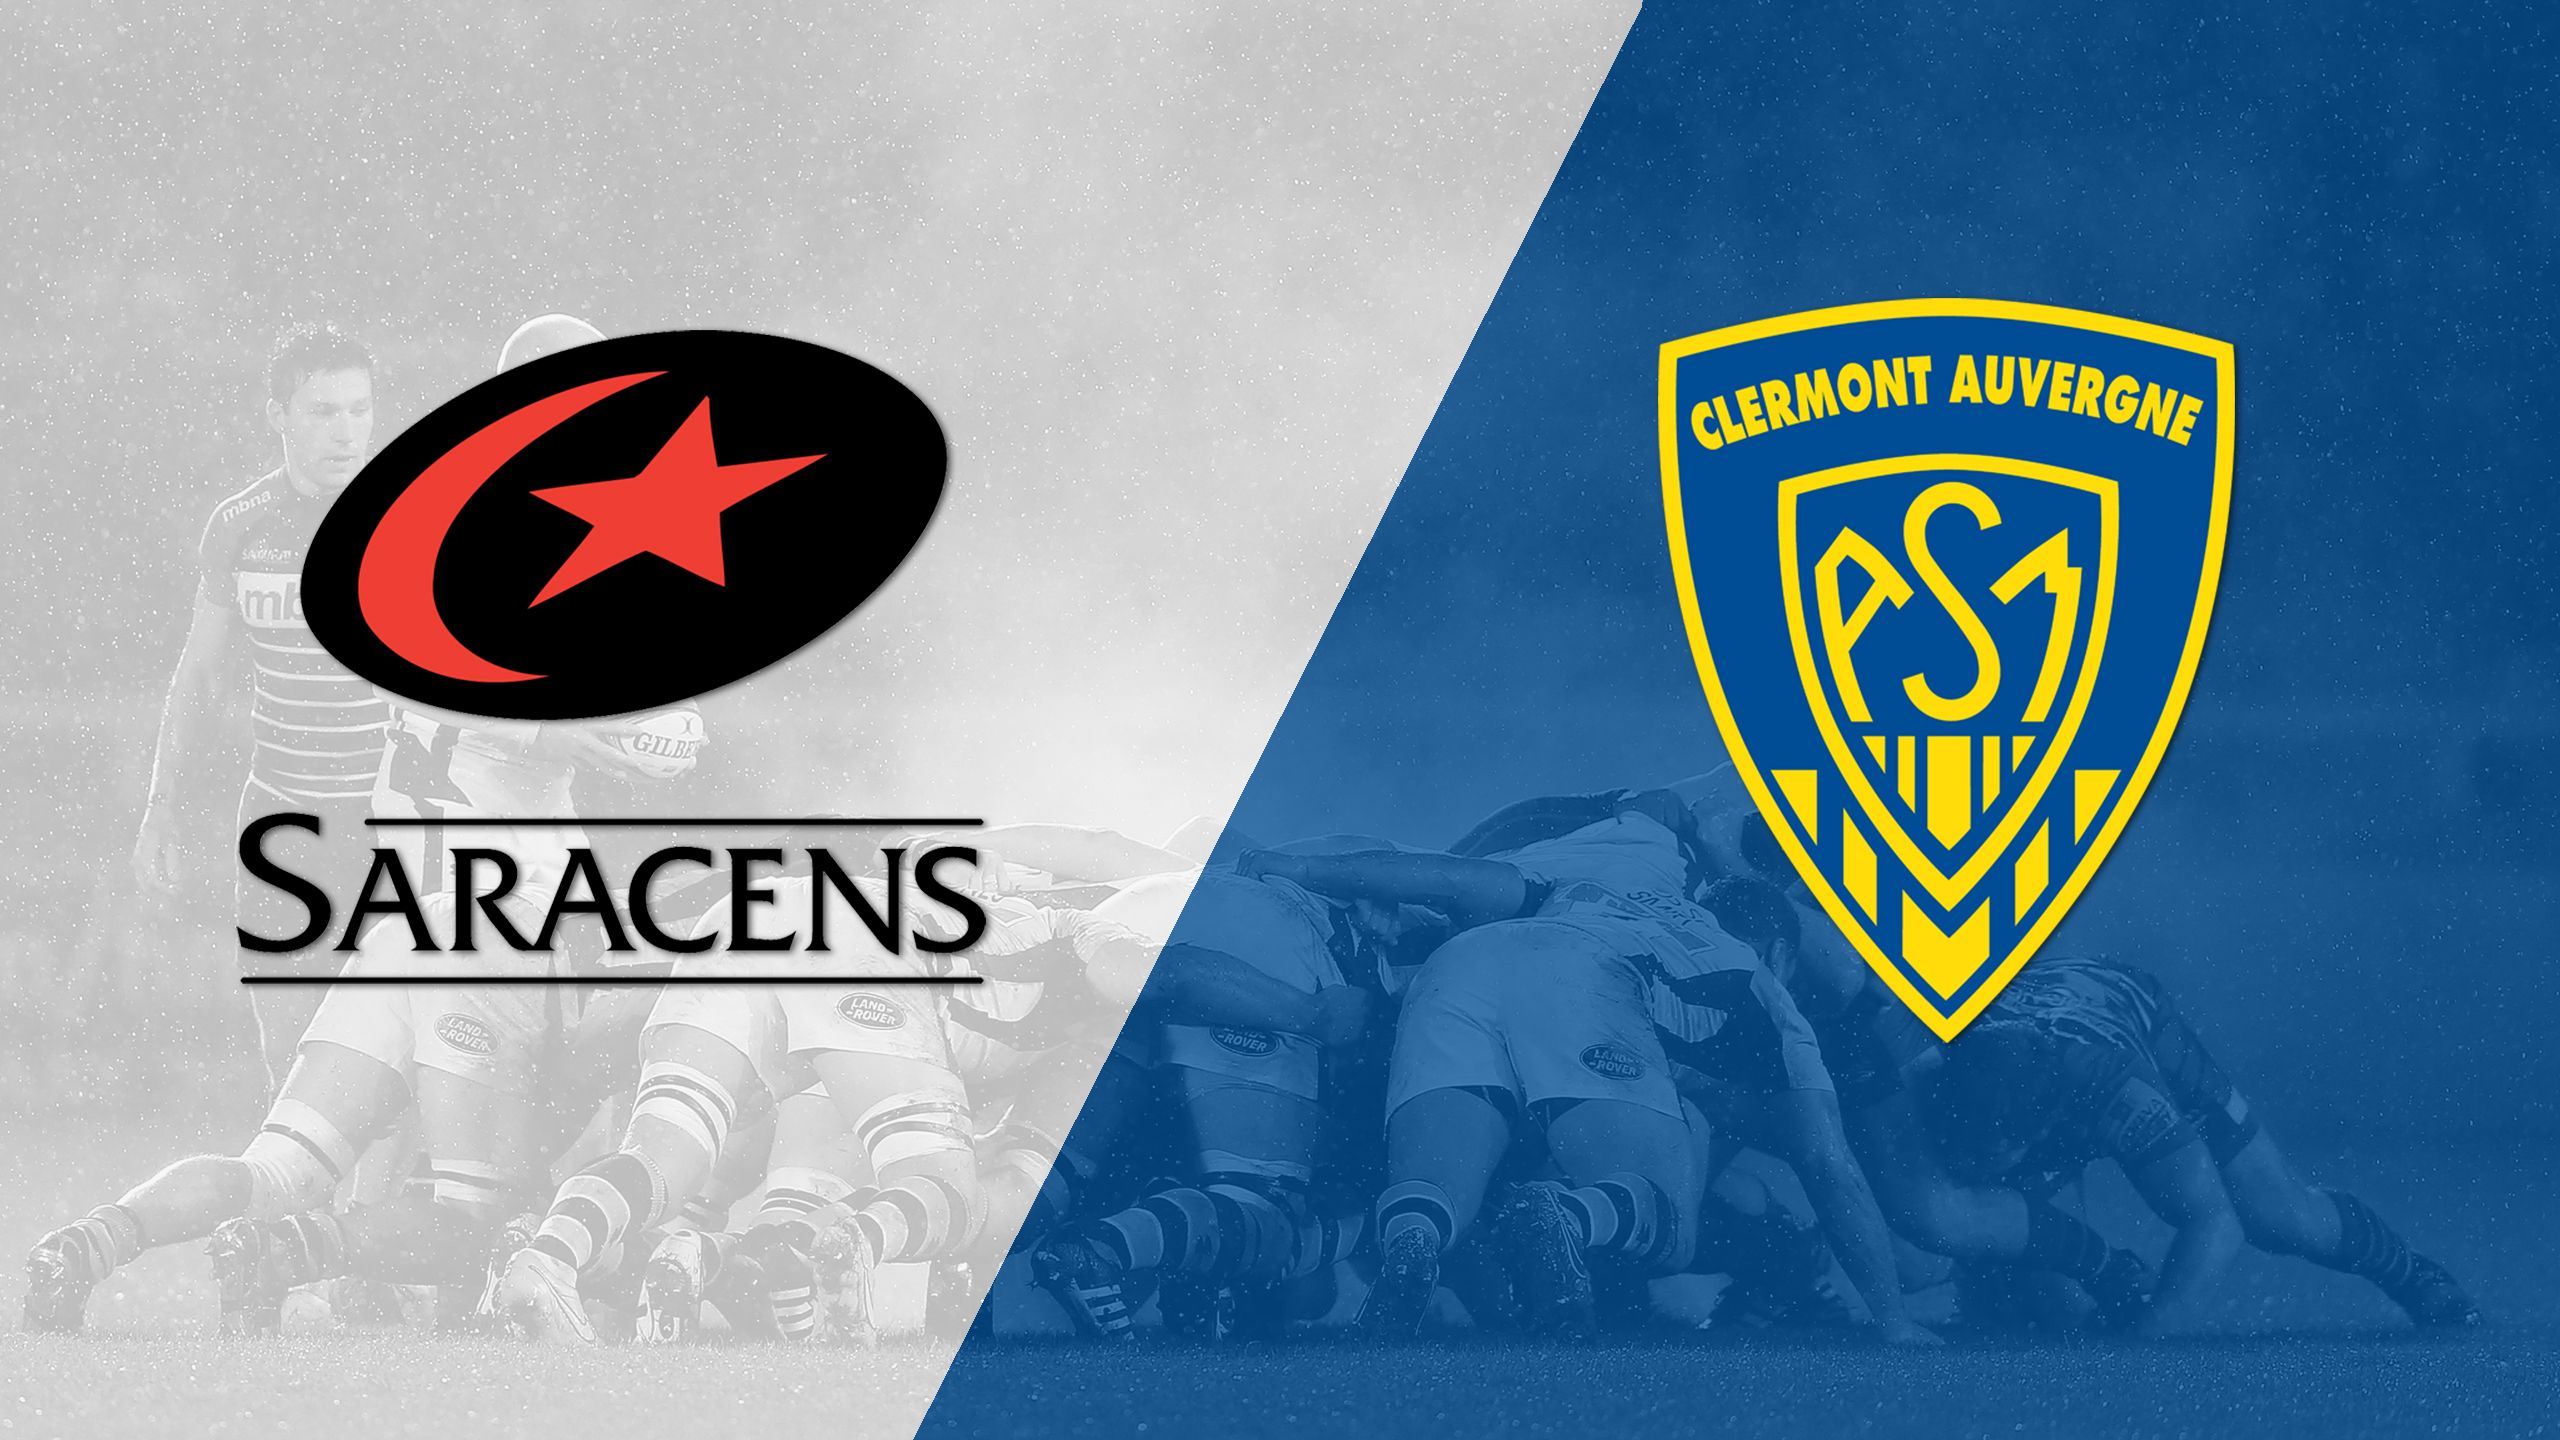 Saracens vs. Asm Clermont Auvergne (Round 3) (European Rugby Championship Cup)